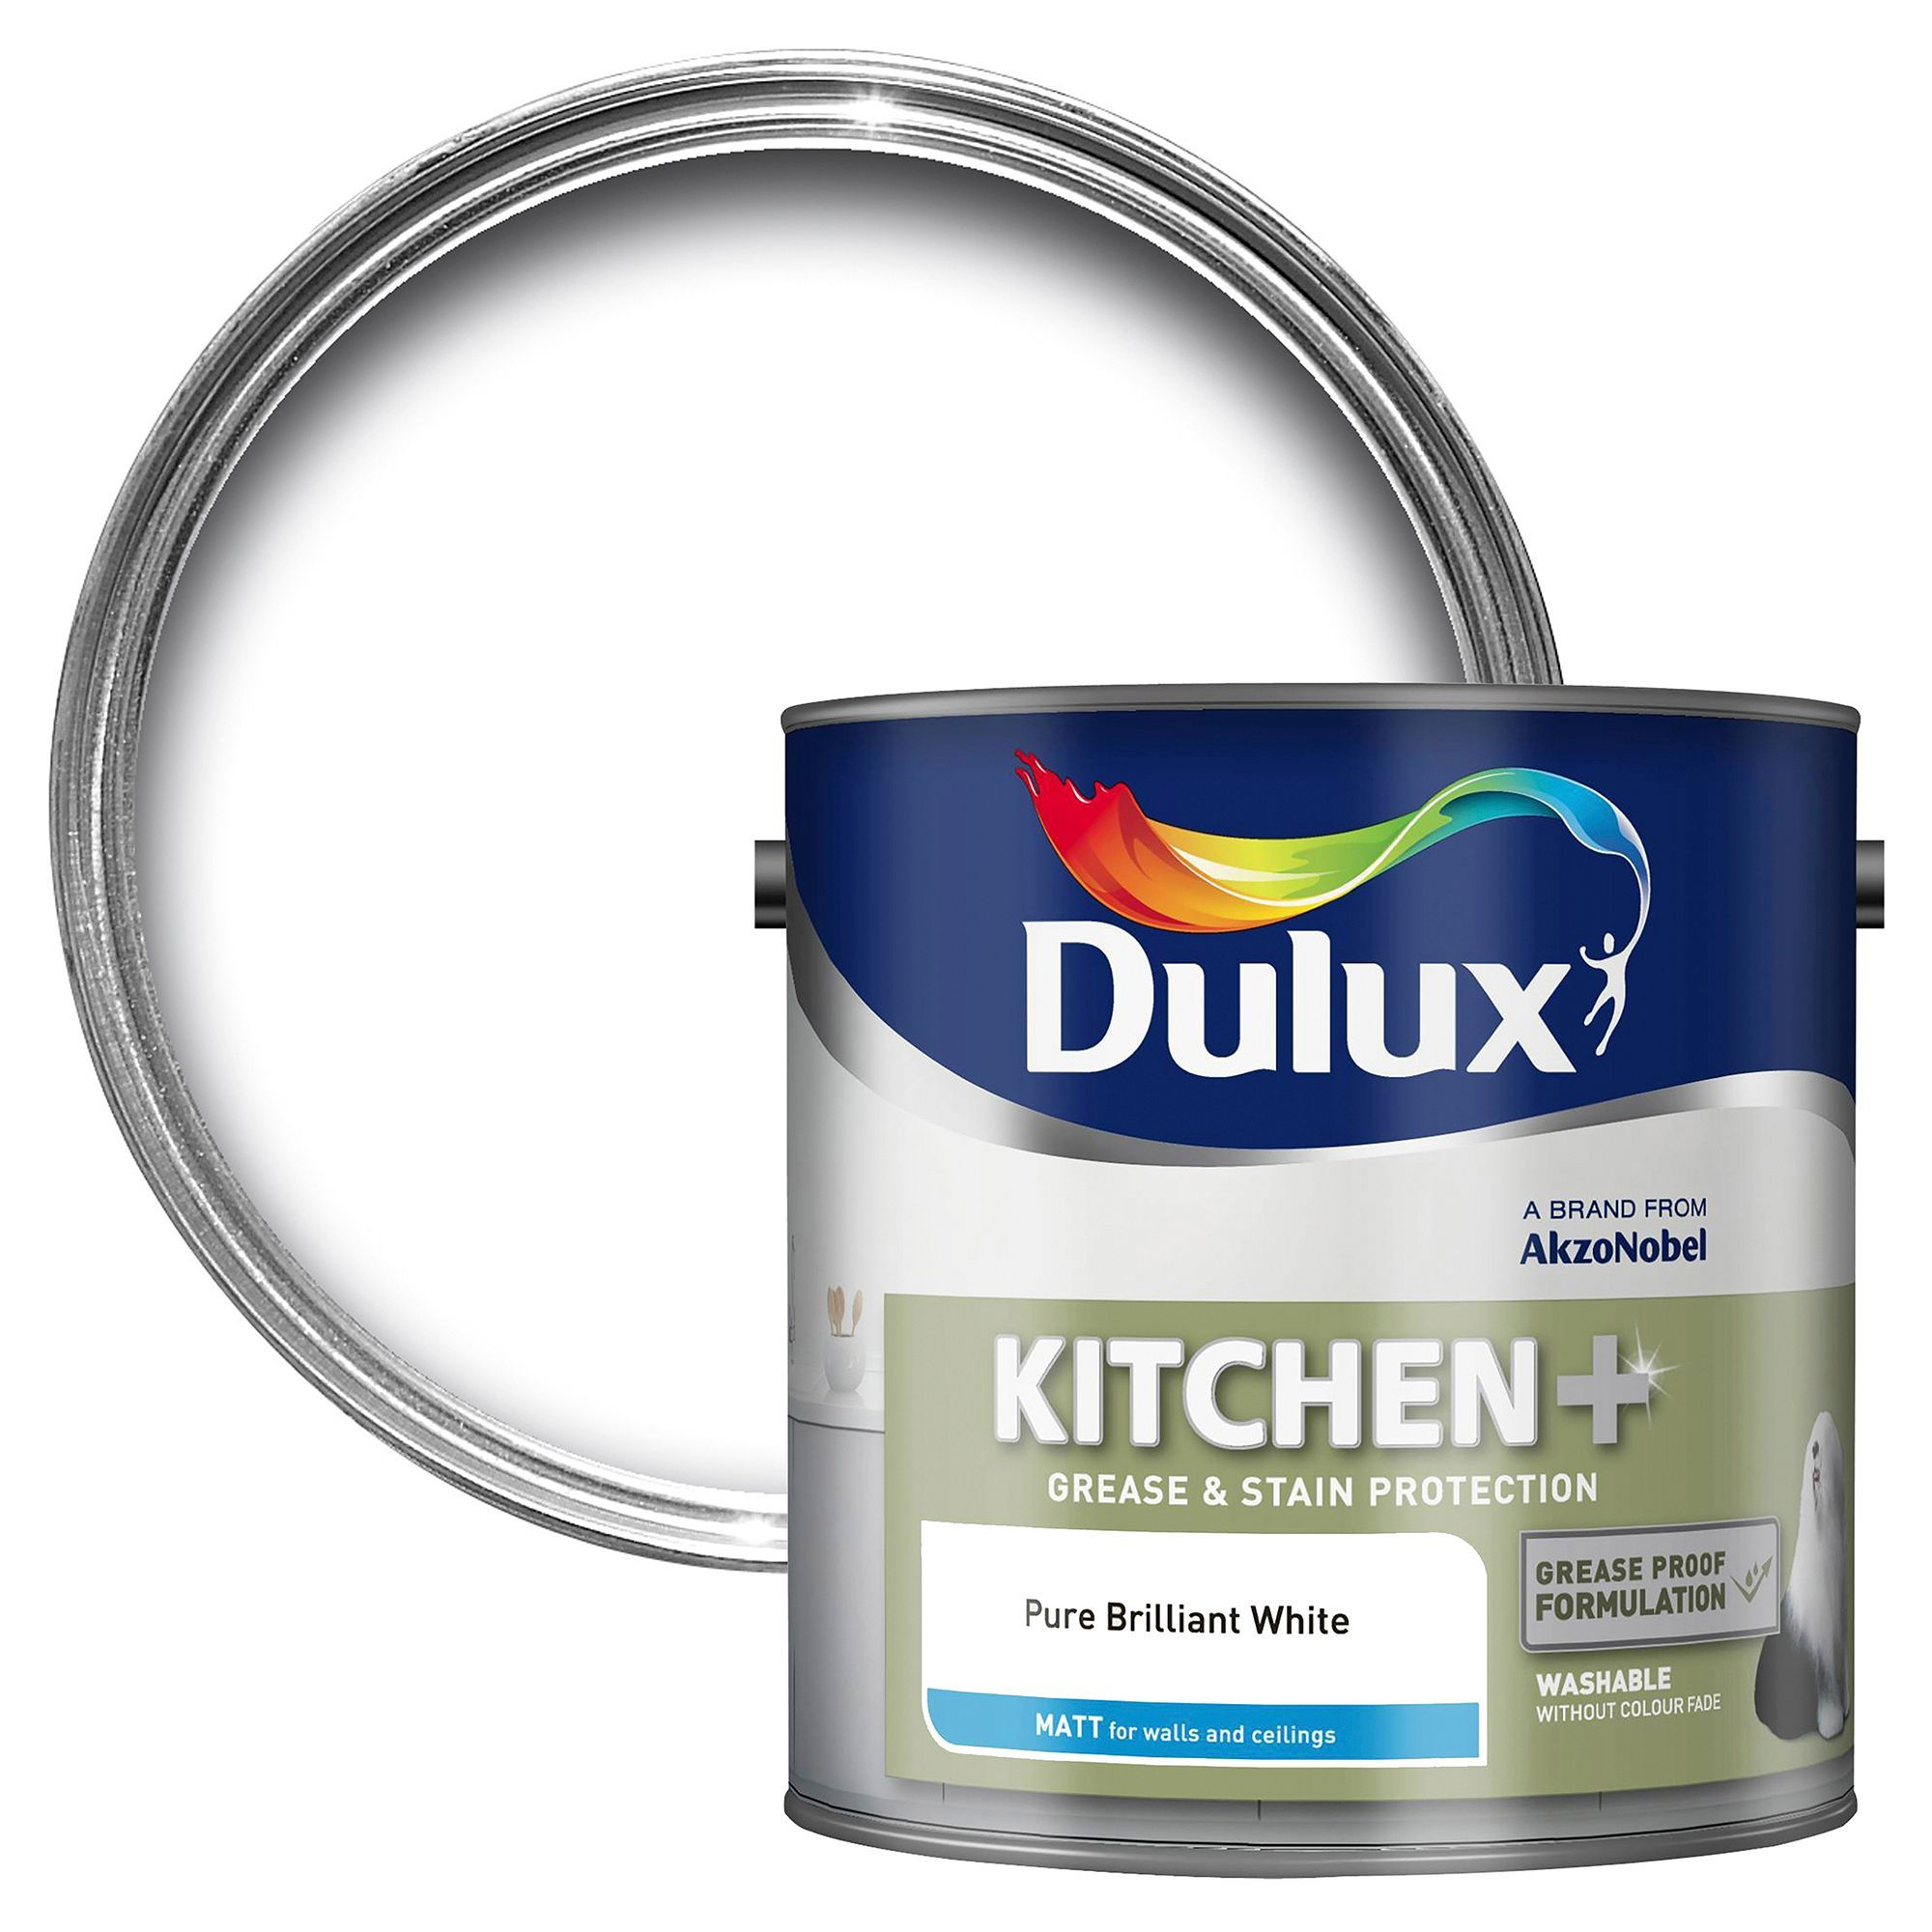 White Kitchen Emulsion dulux kitchen pure brilliant white matt emulsion paint 2.5l